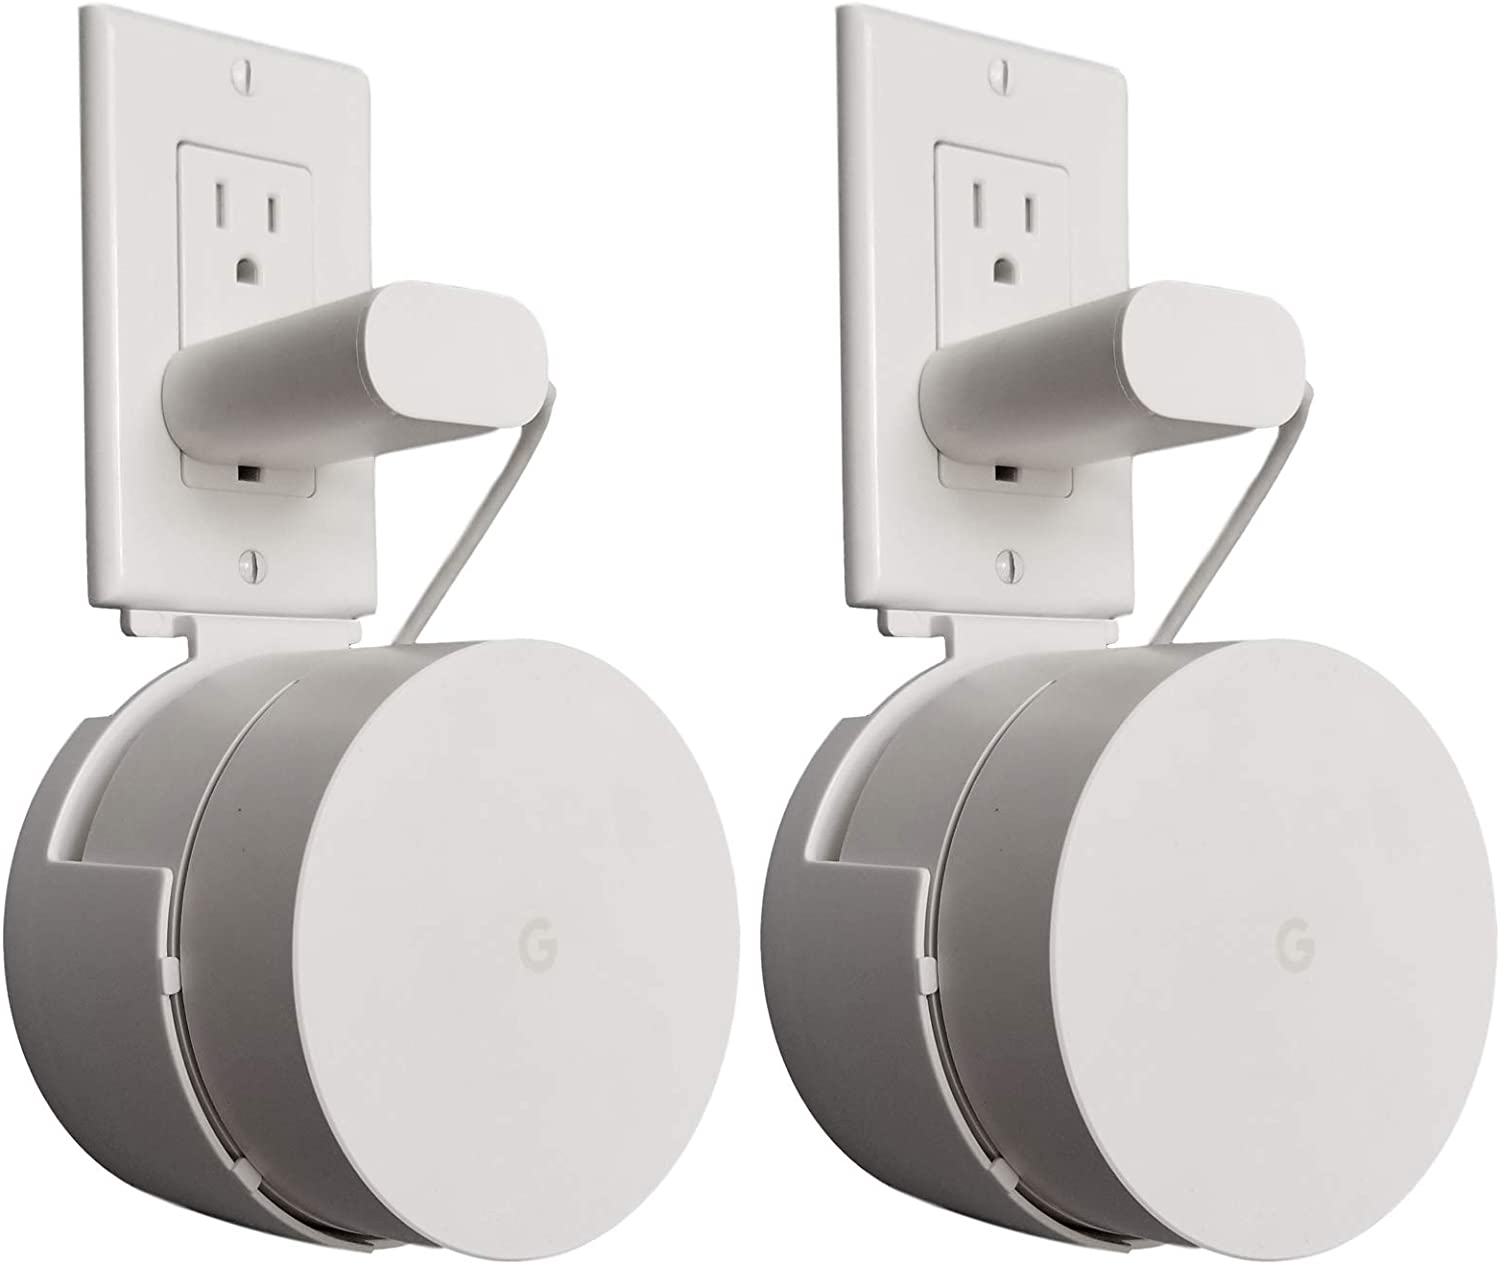 Dot Genie Google WiFi Outlet Holder Mount [Pro Version]: The Strongest, Most Versatile and Attractive Mount Stand Holder for Google WiFi. Great for Home and Businesses! Still No Screws! (1-Pack)